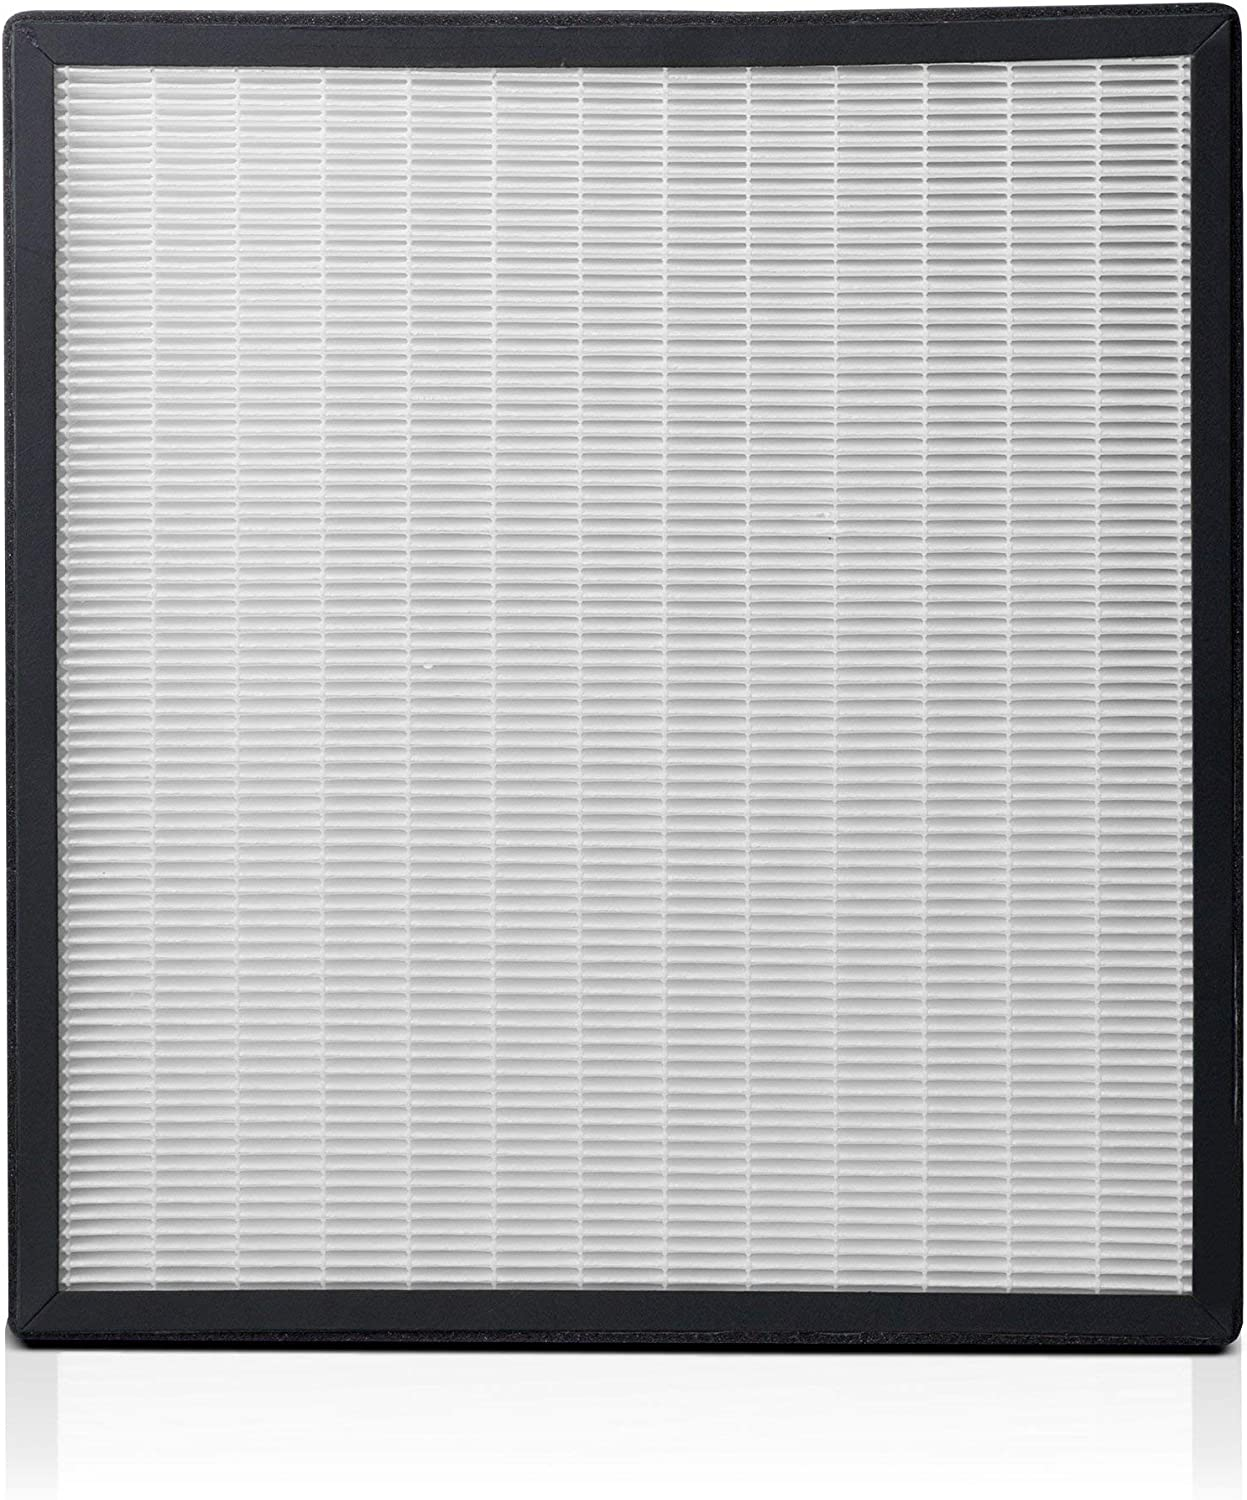 Alen Replacement Air Filter for BreatheSmart Classic, True HEPA Basic Filter for Allergies, Pollen, Dust, Dander and Fur